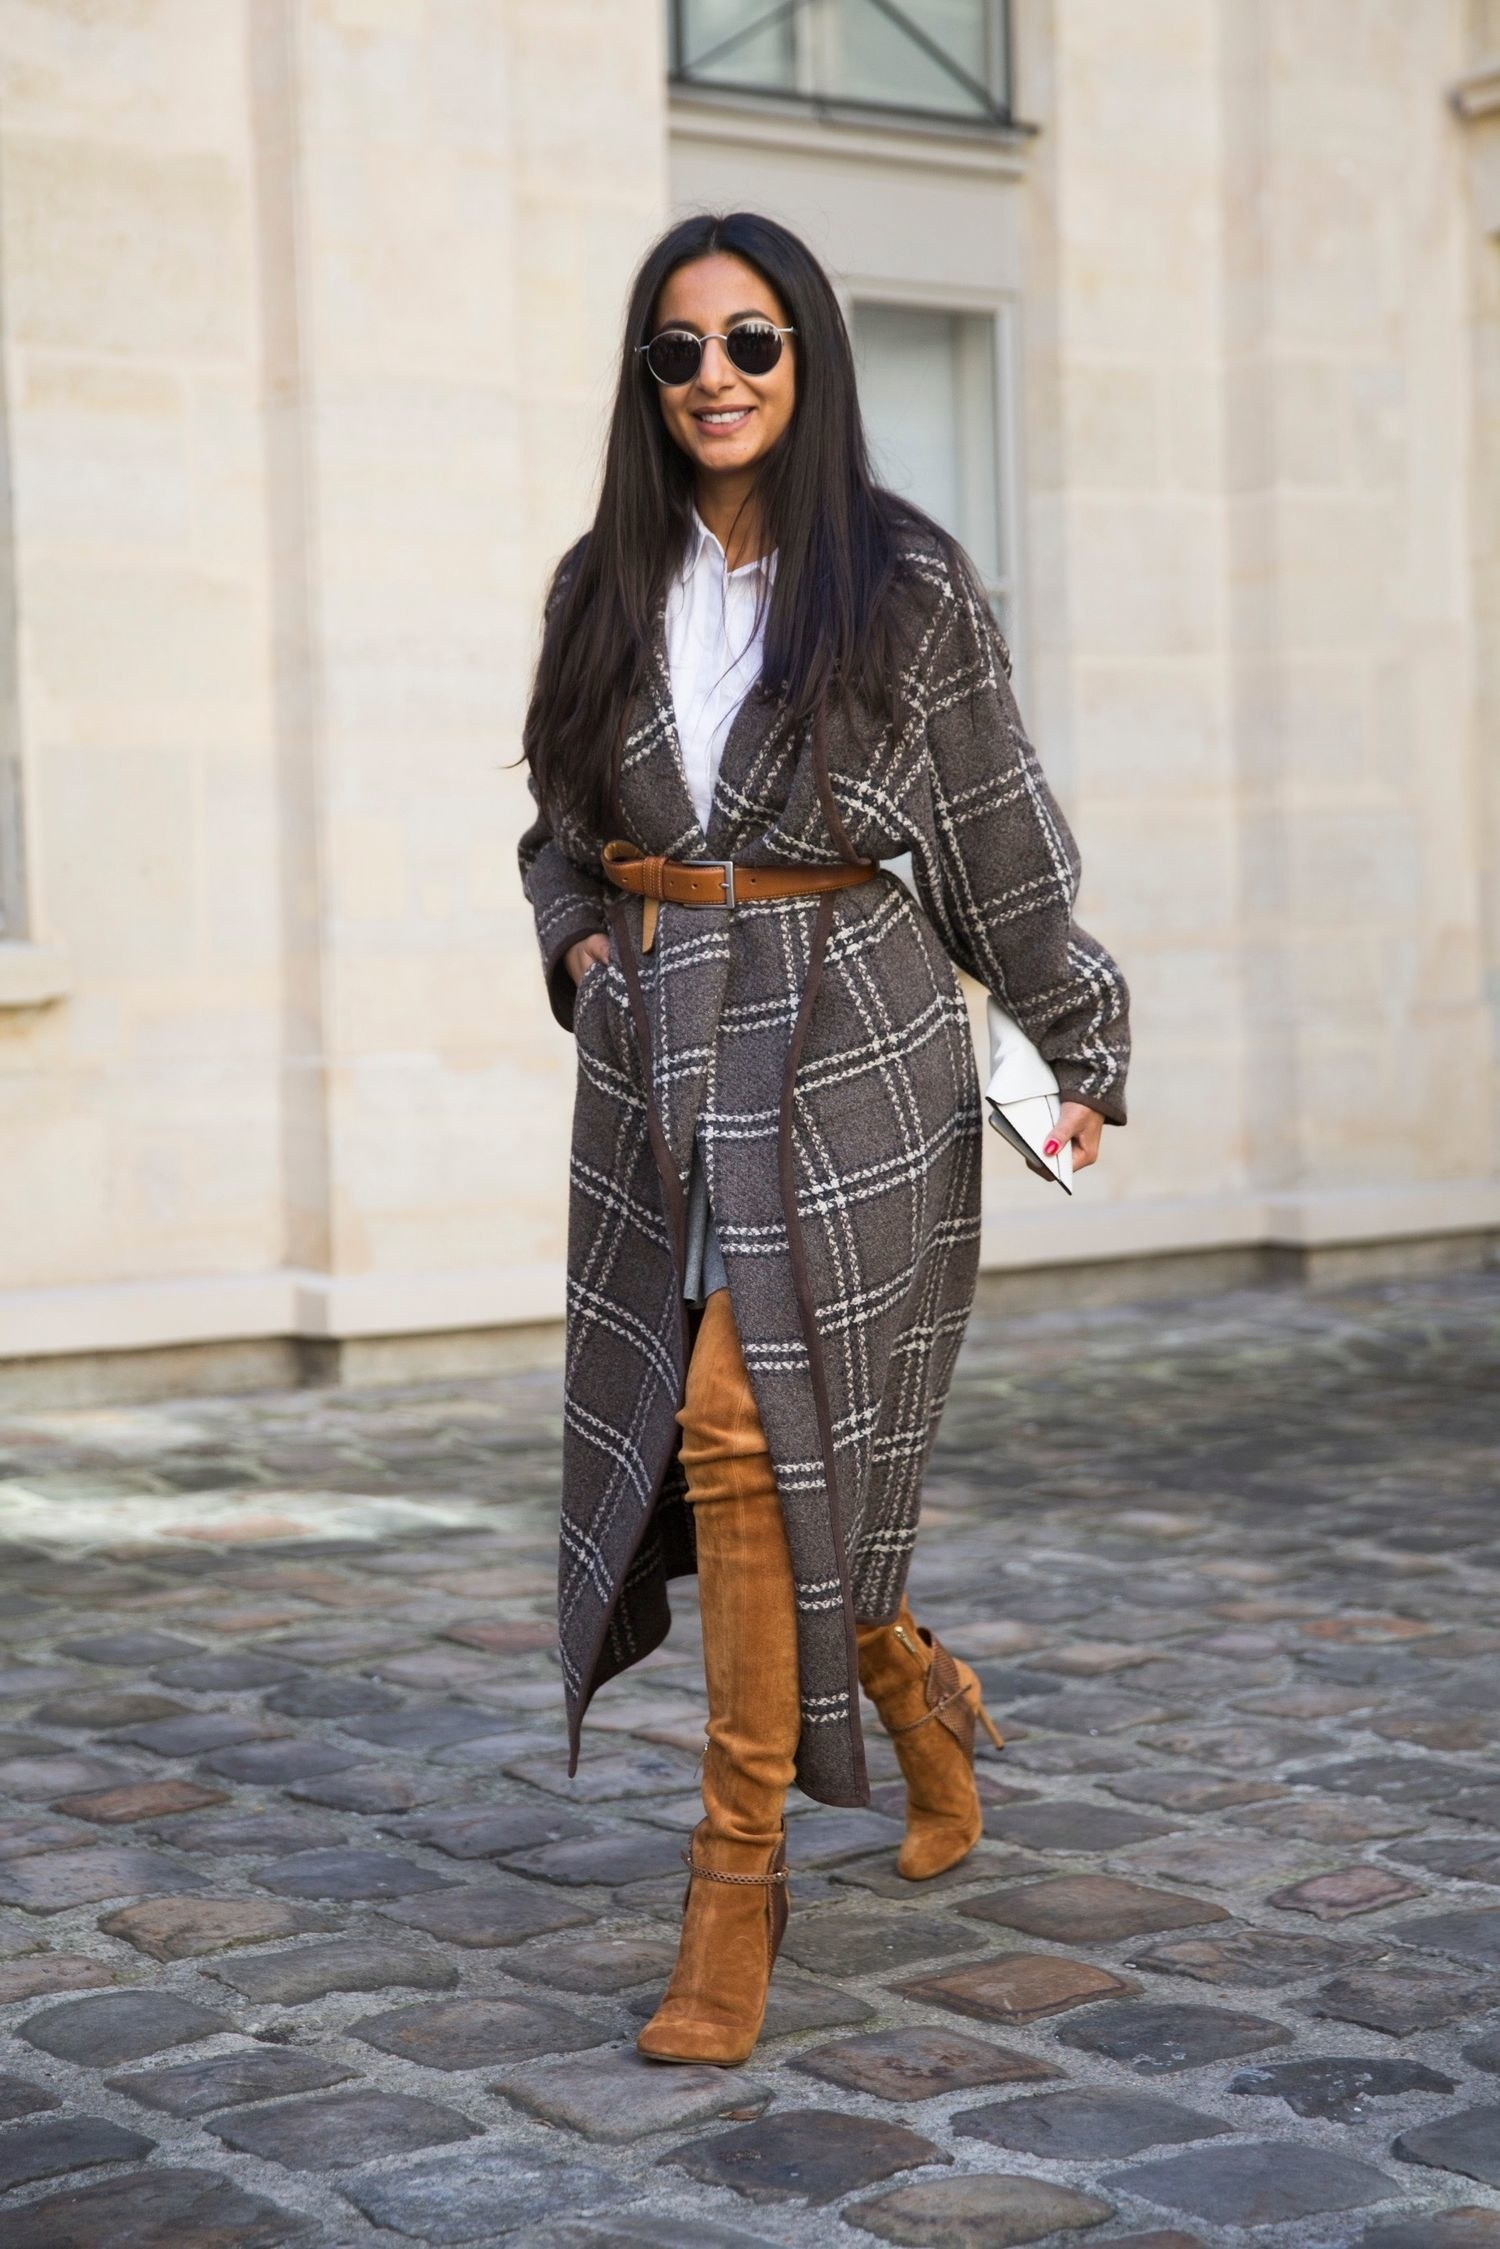 winter outfits 35 winter outfit ideas | glamour srxgrwn